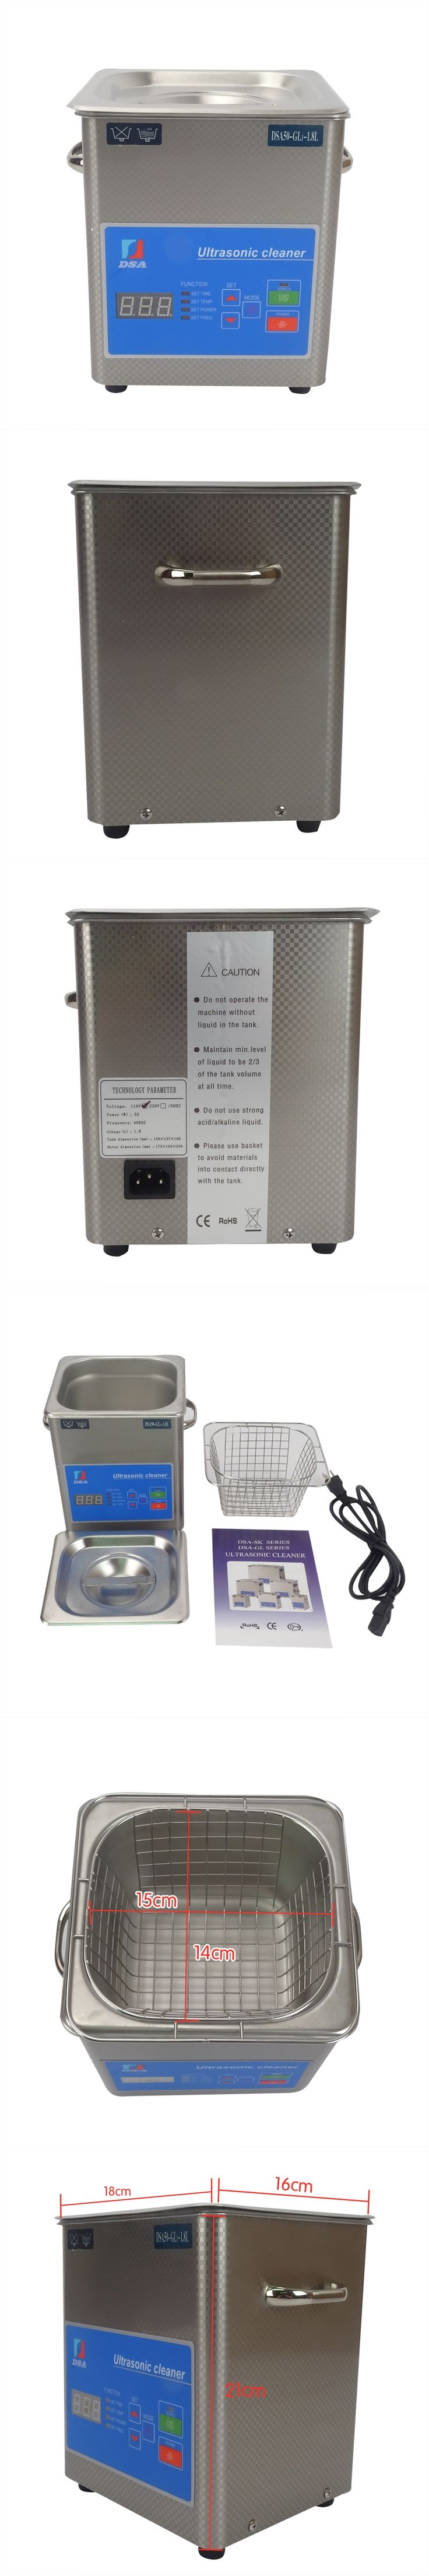 1PC Digital DSA50-GL1 110/220V Ultrasonic Cleaner Stainless Steel 1.8L Adjustable Free Basket